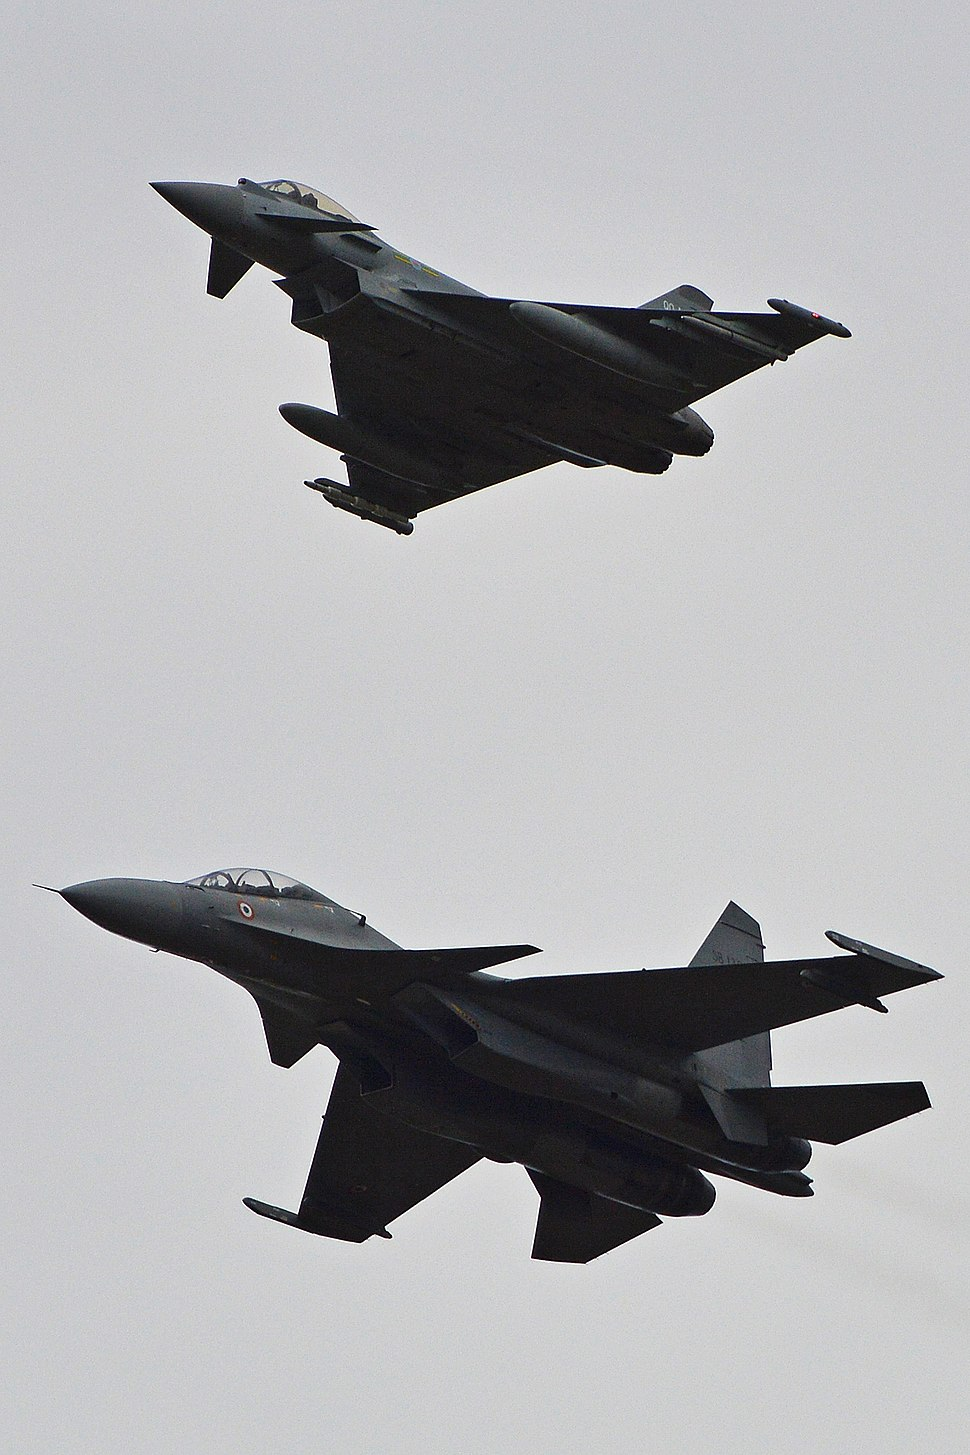 Typhoon and Su-30MKI-3 formation